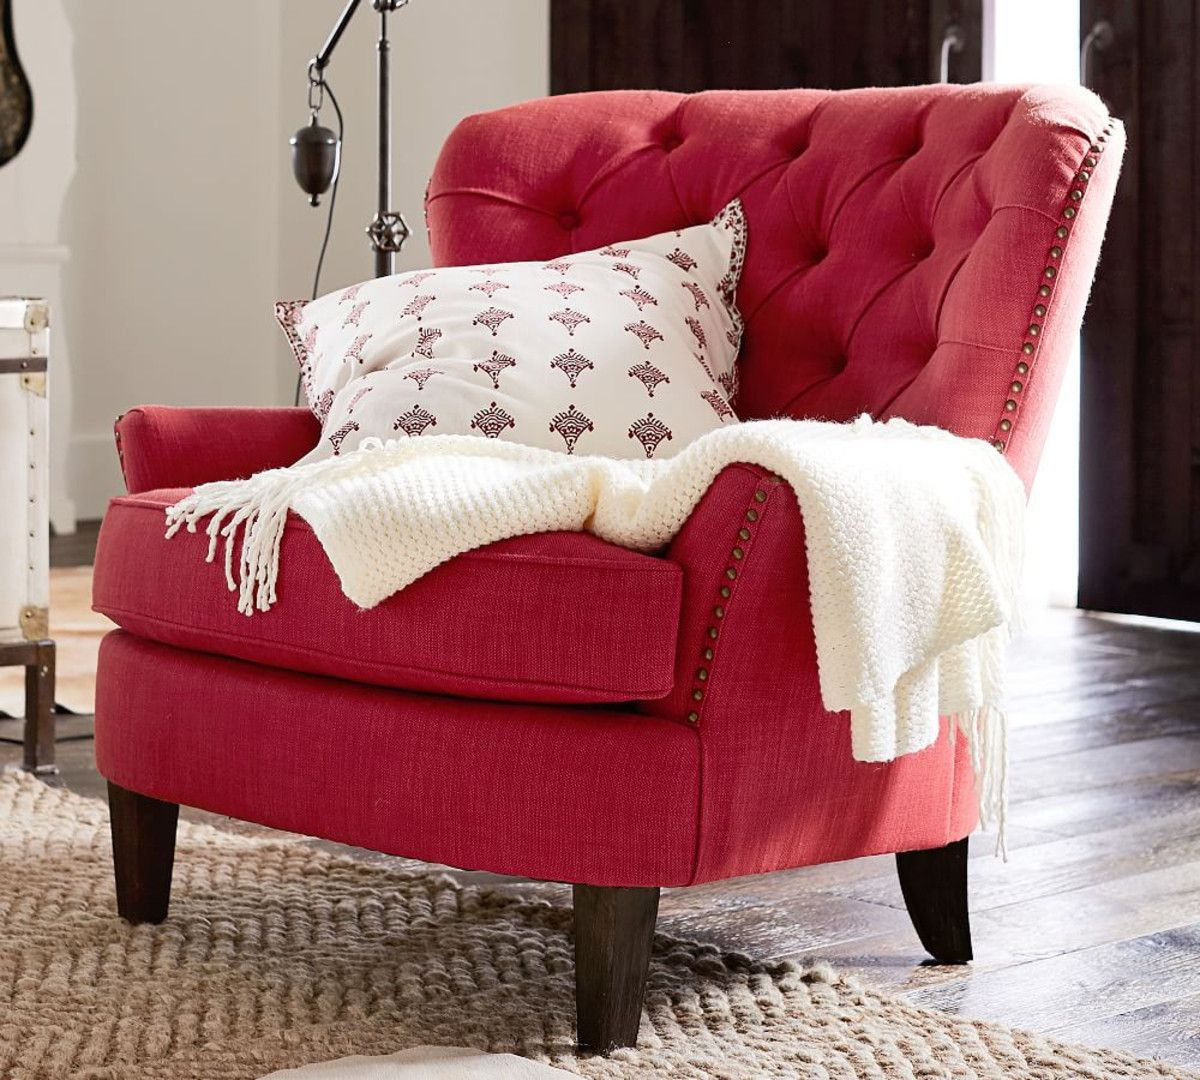 Cardiff Tufted Upholstered Armchair - Geranium Red | Arm ...